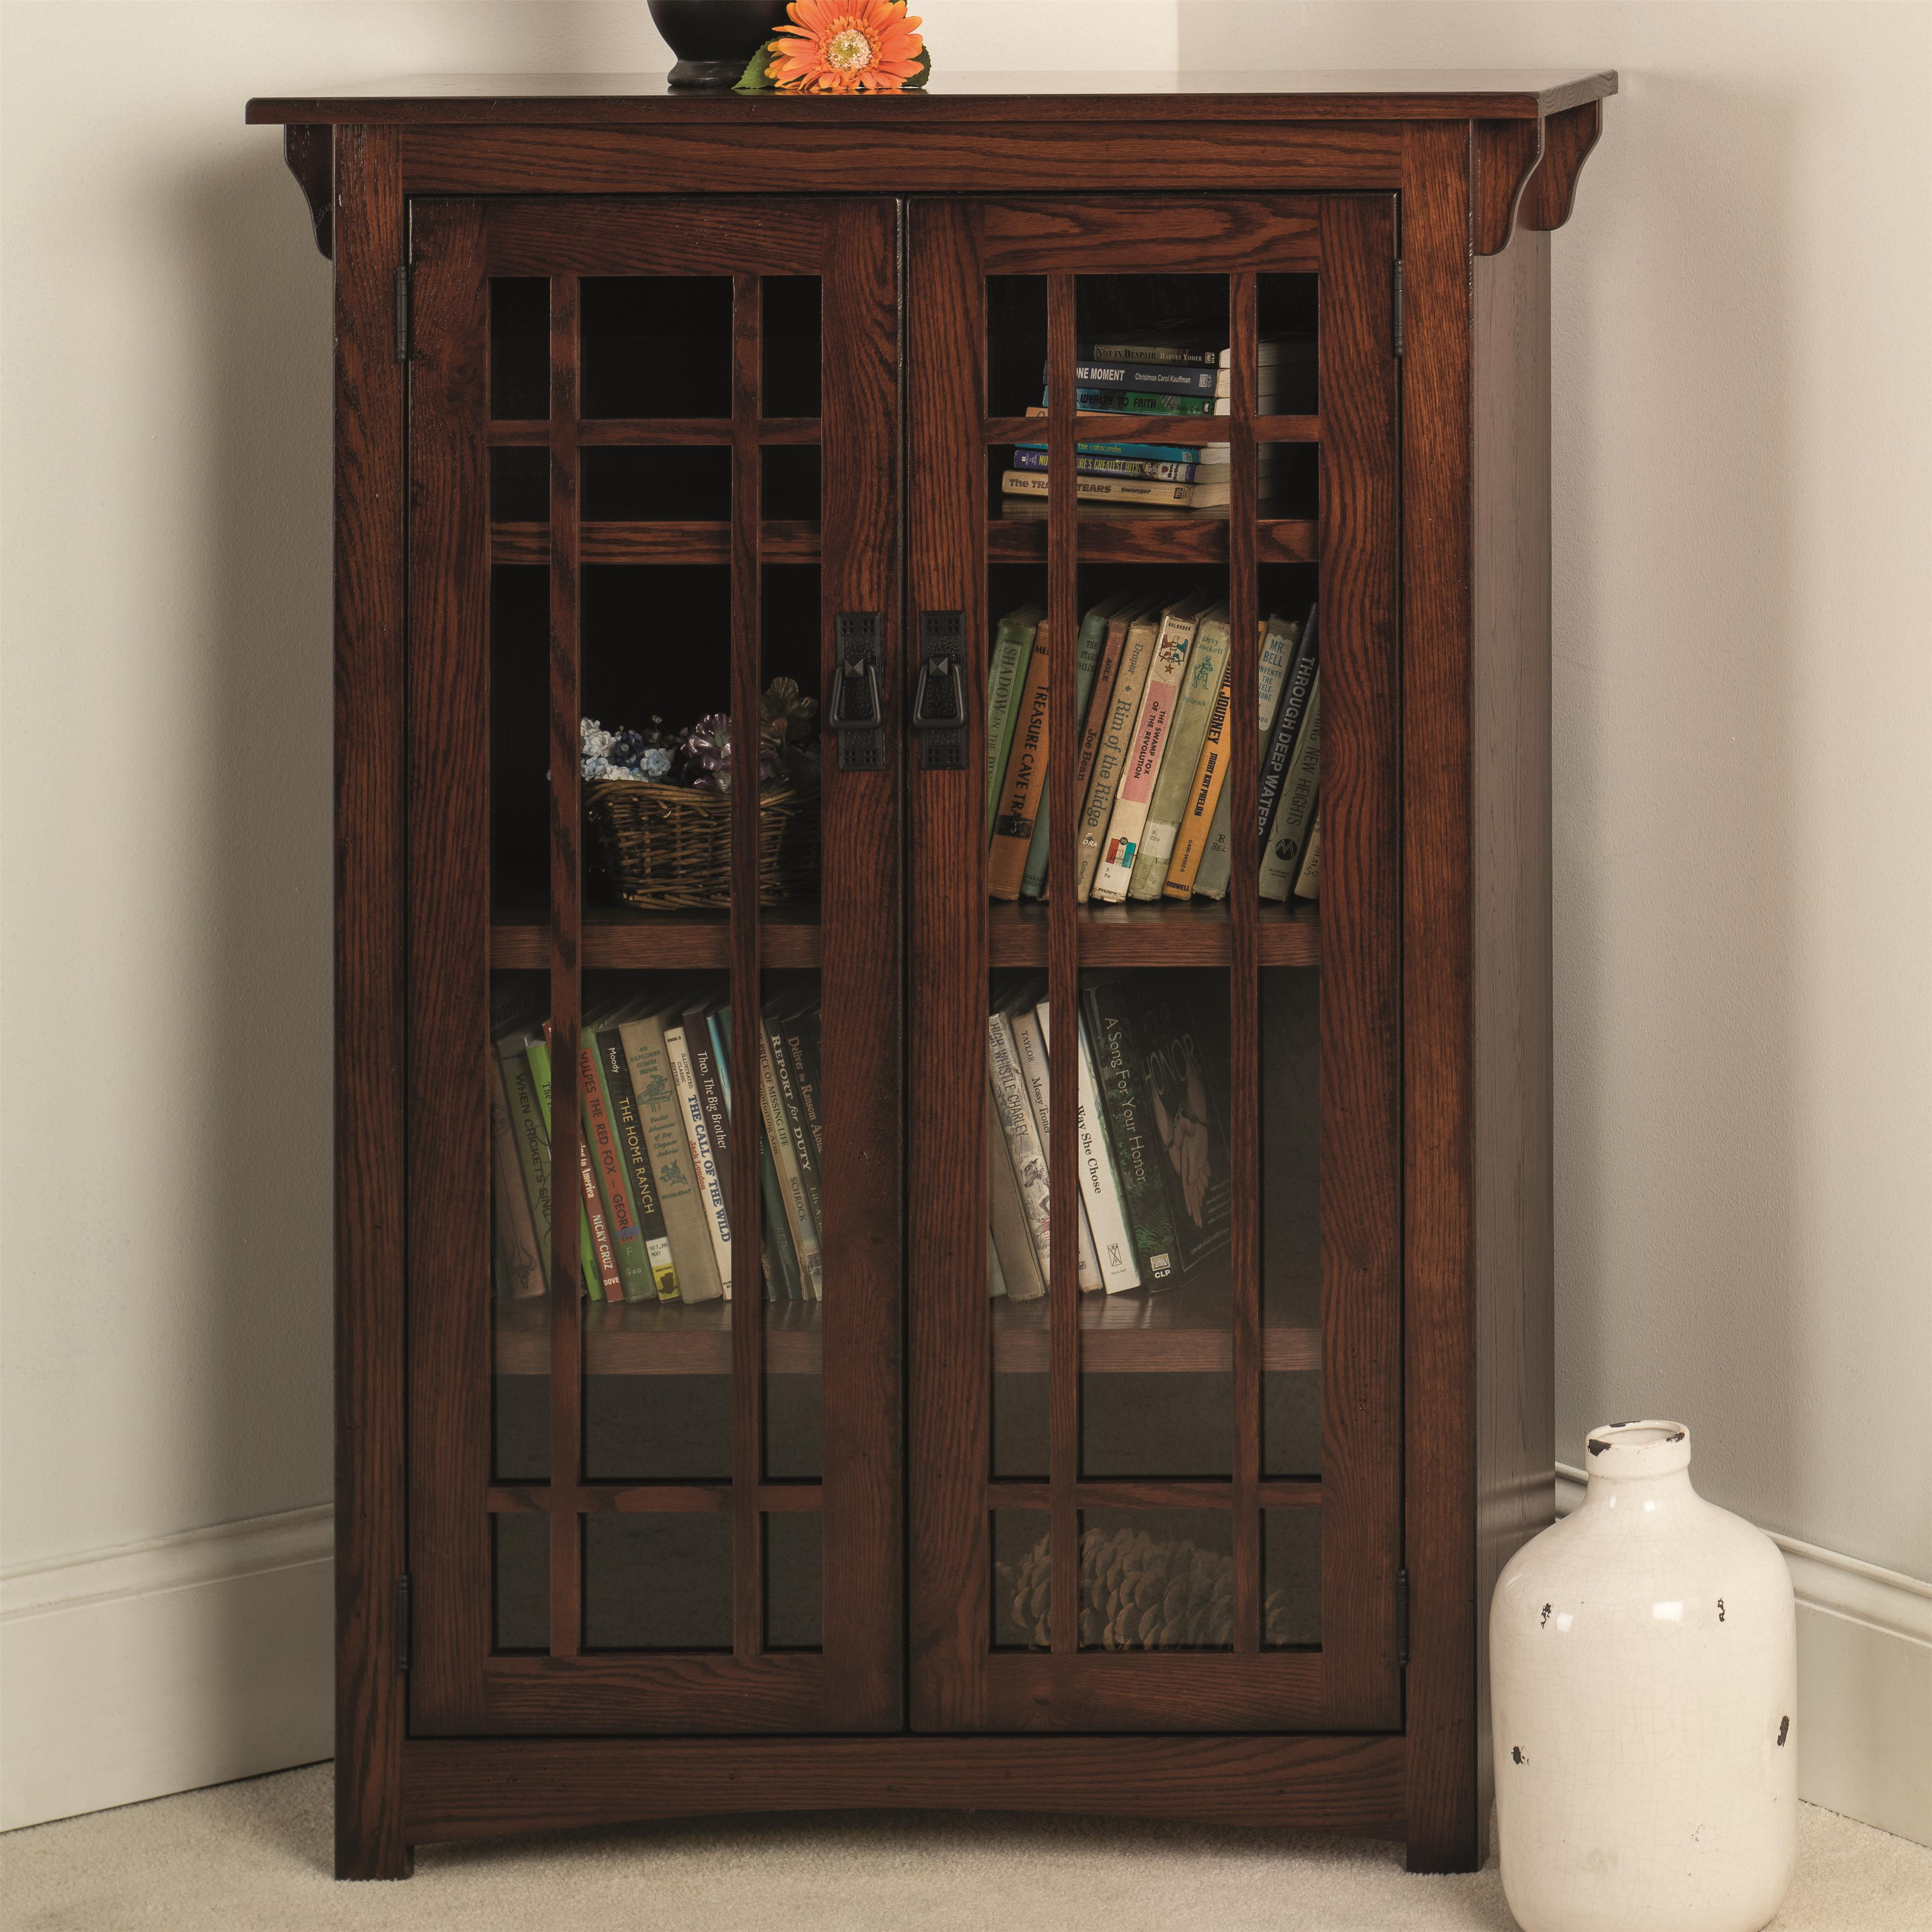 Wonder Wood Bookcases Customizable Old Mission Bookcase by Wonder Wood at Saugerties Furniture Mart